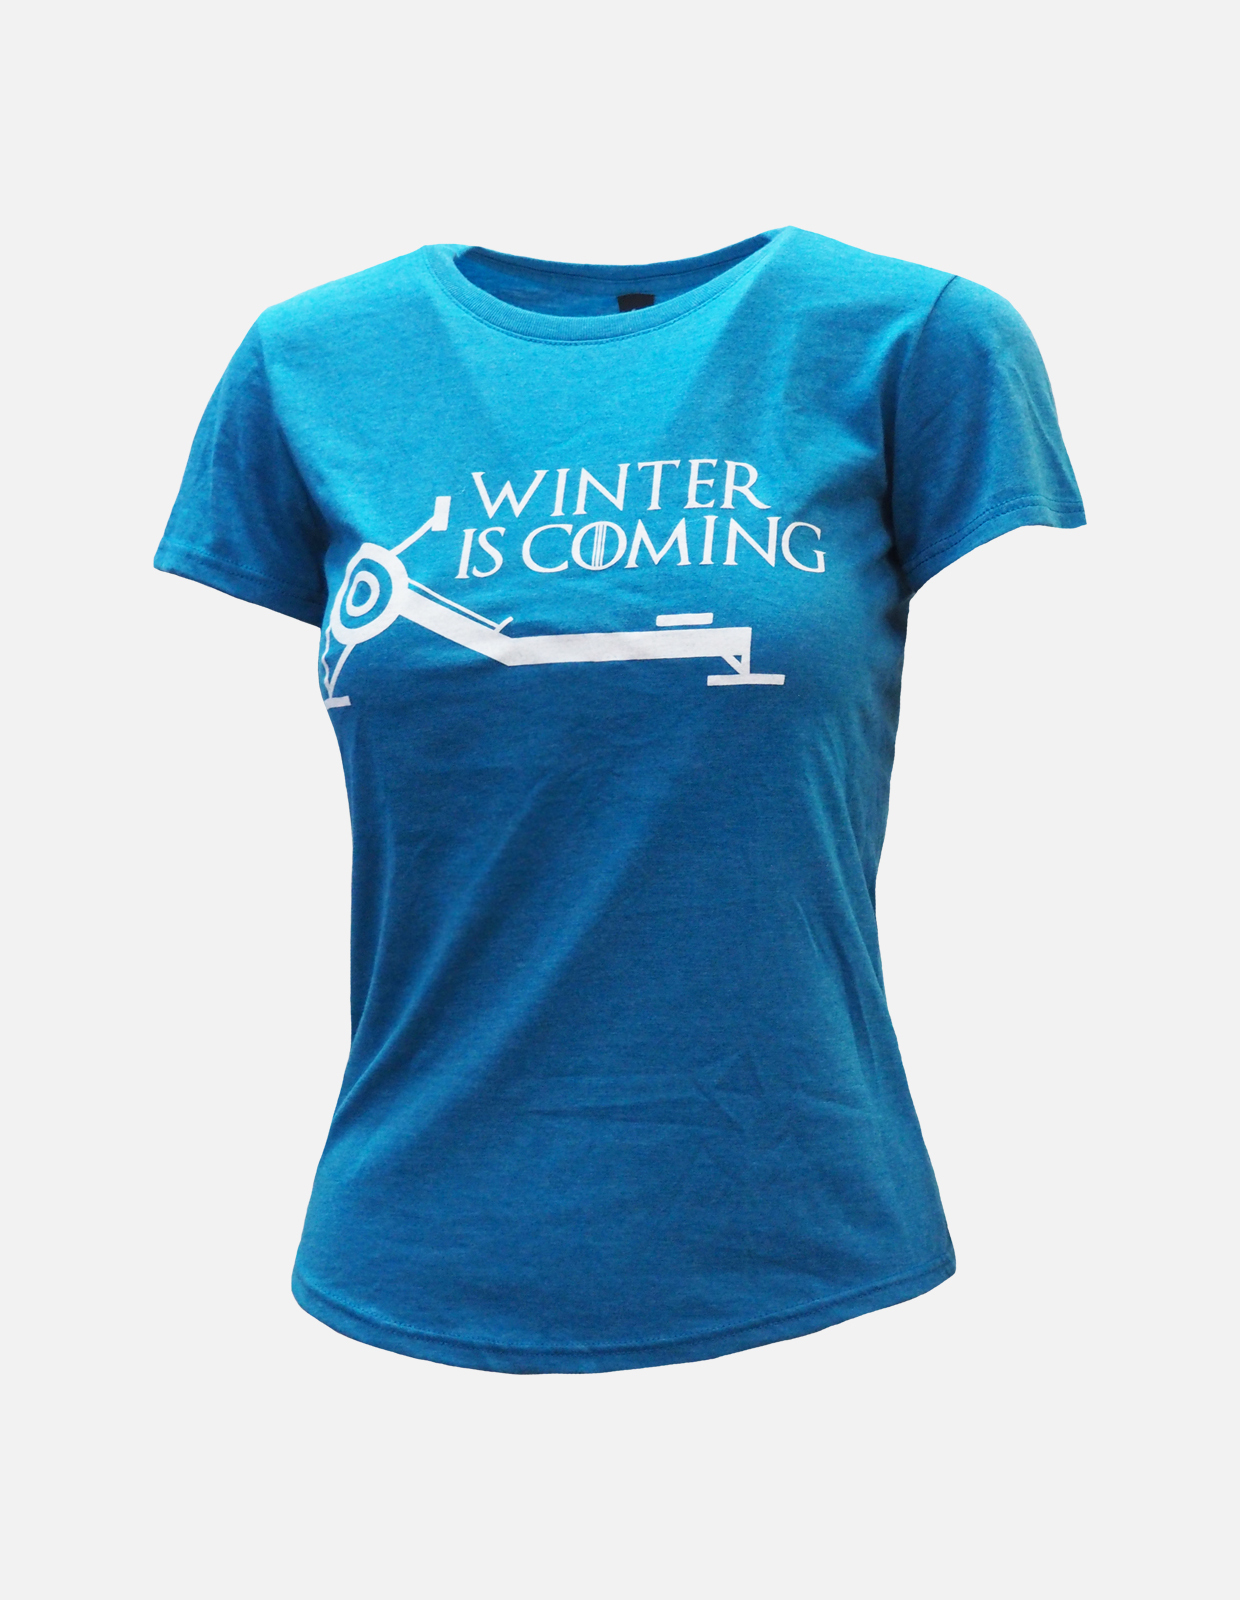 Winter is coming tee womens blue